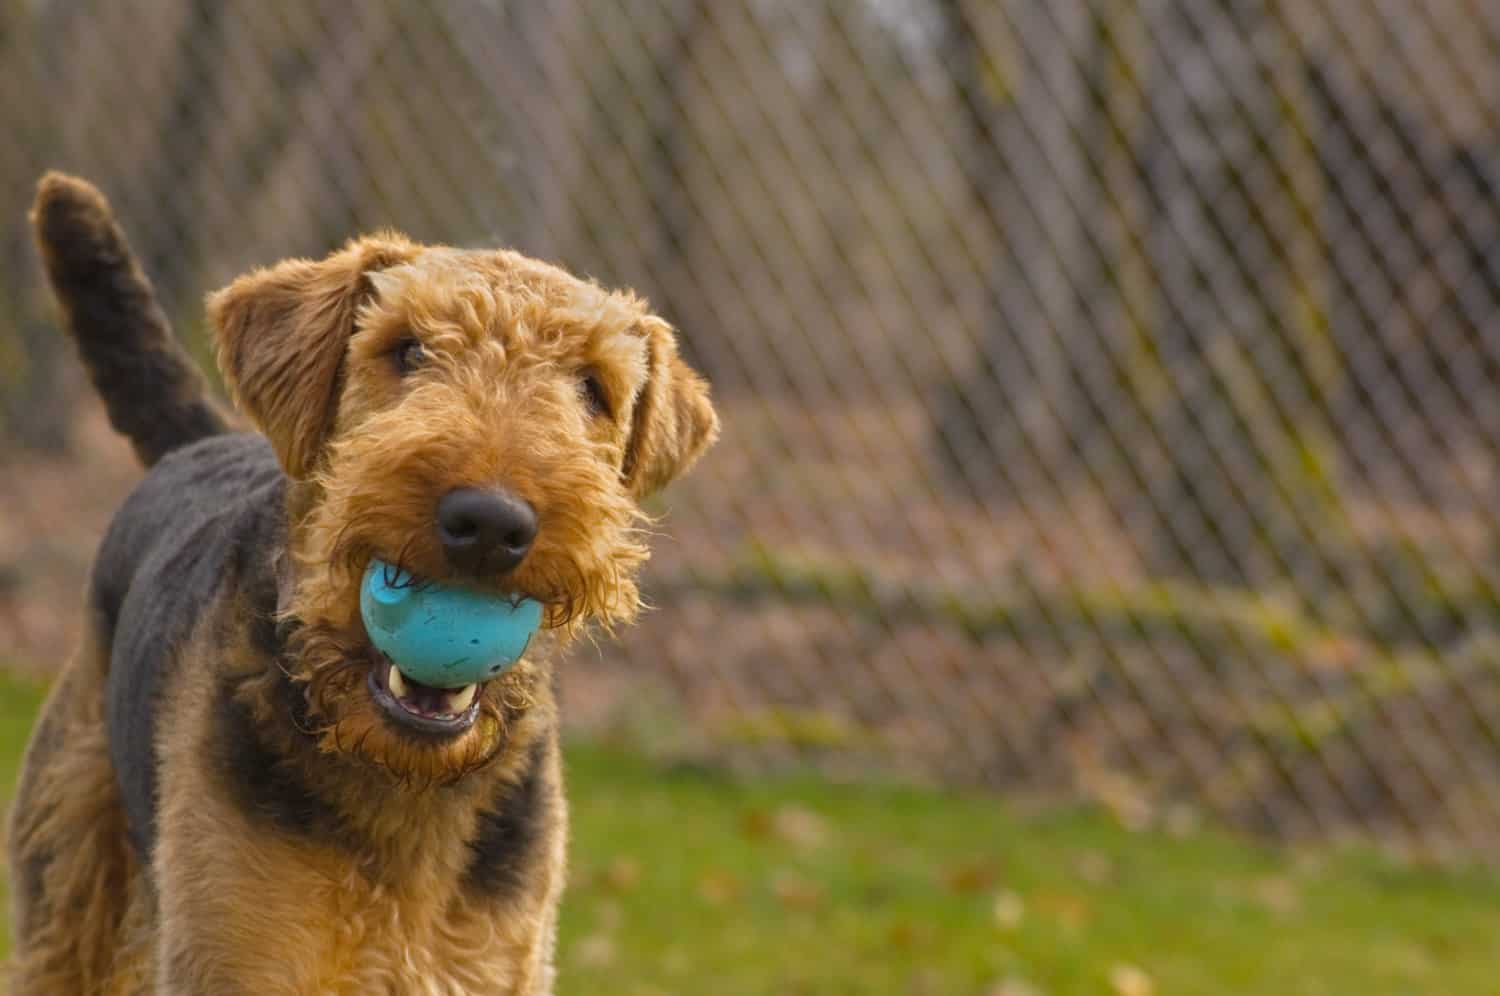 Playful airedale terrier dog with ball in mouth